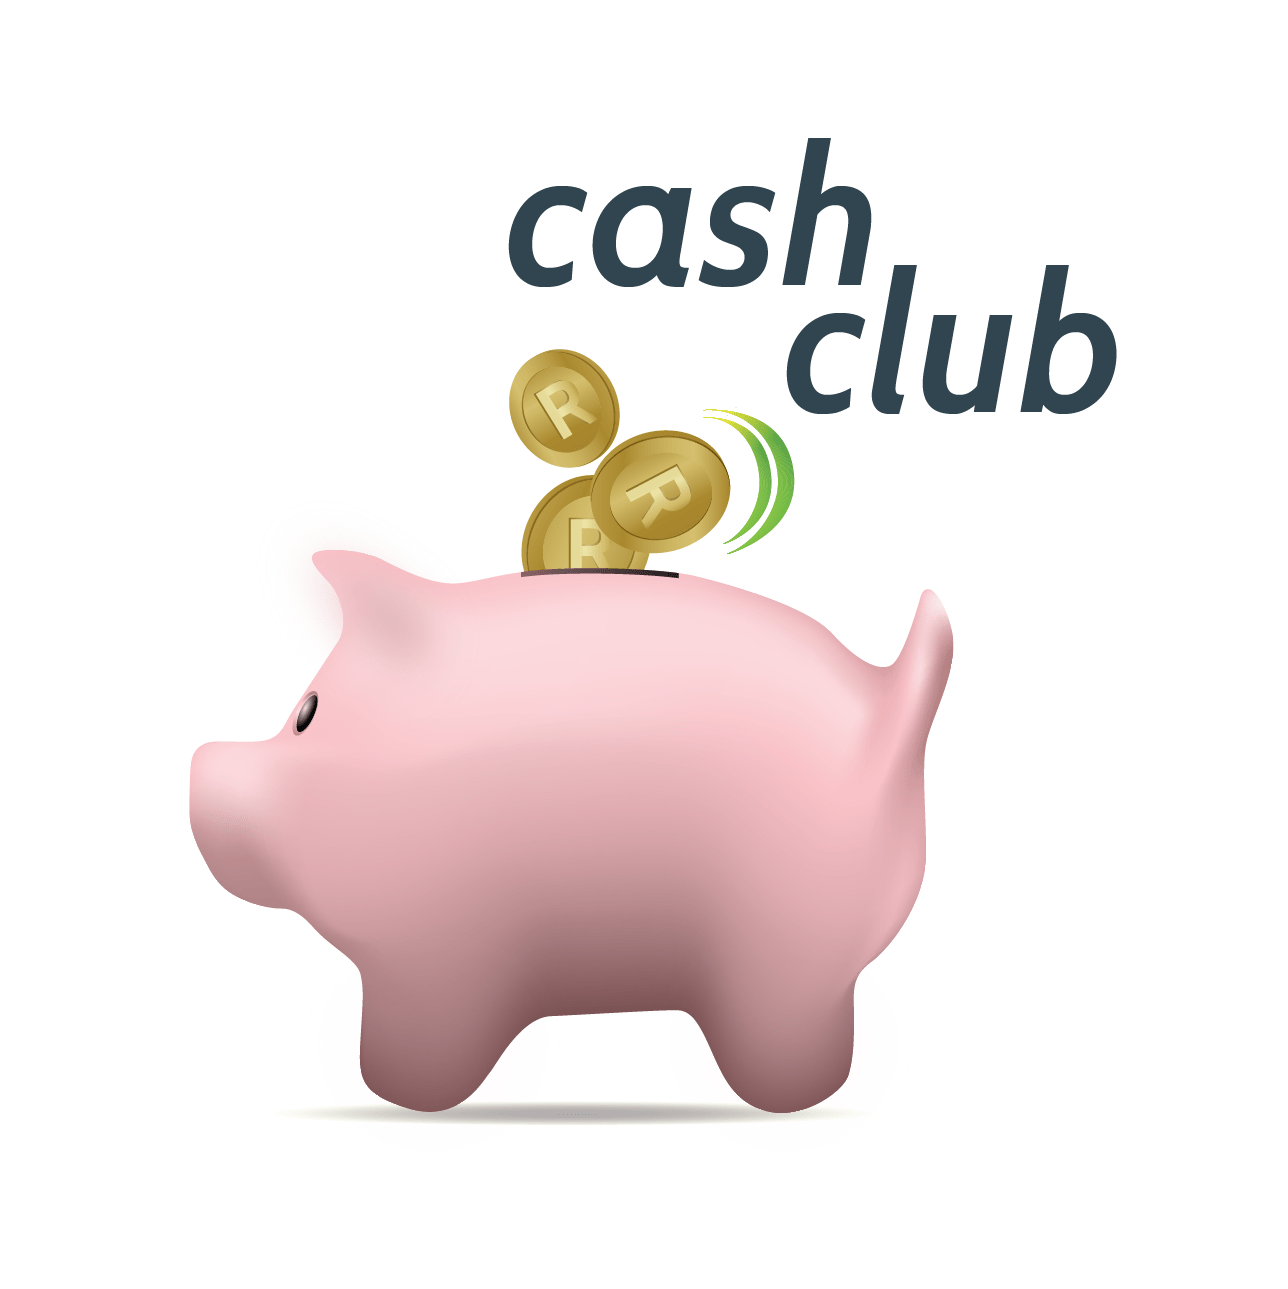 Cash Club: How to start saving